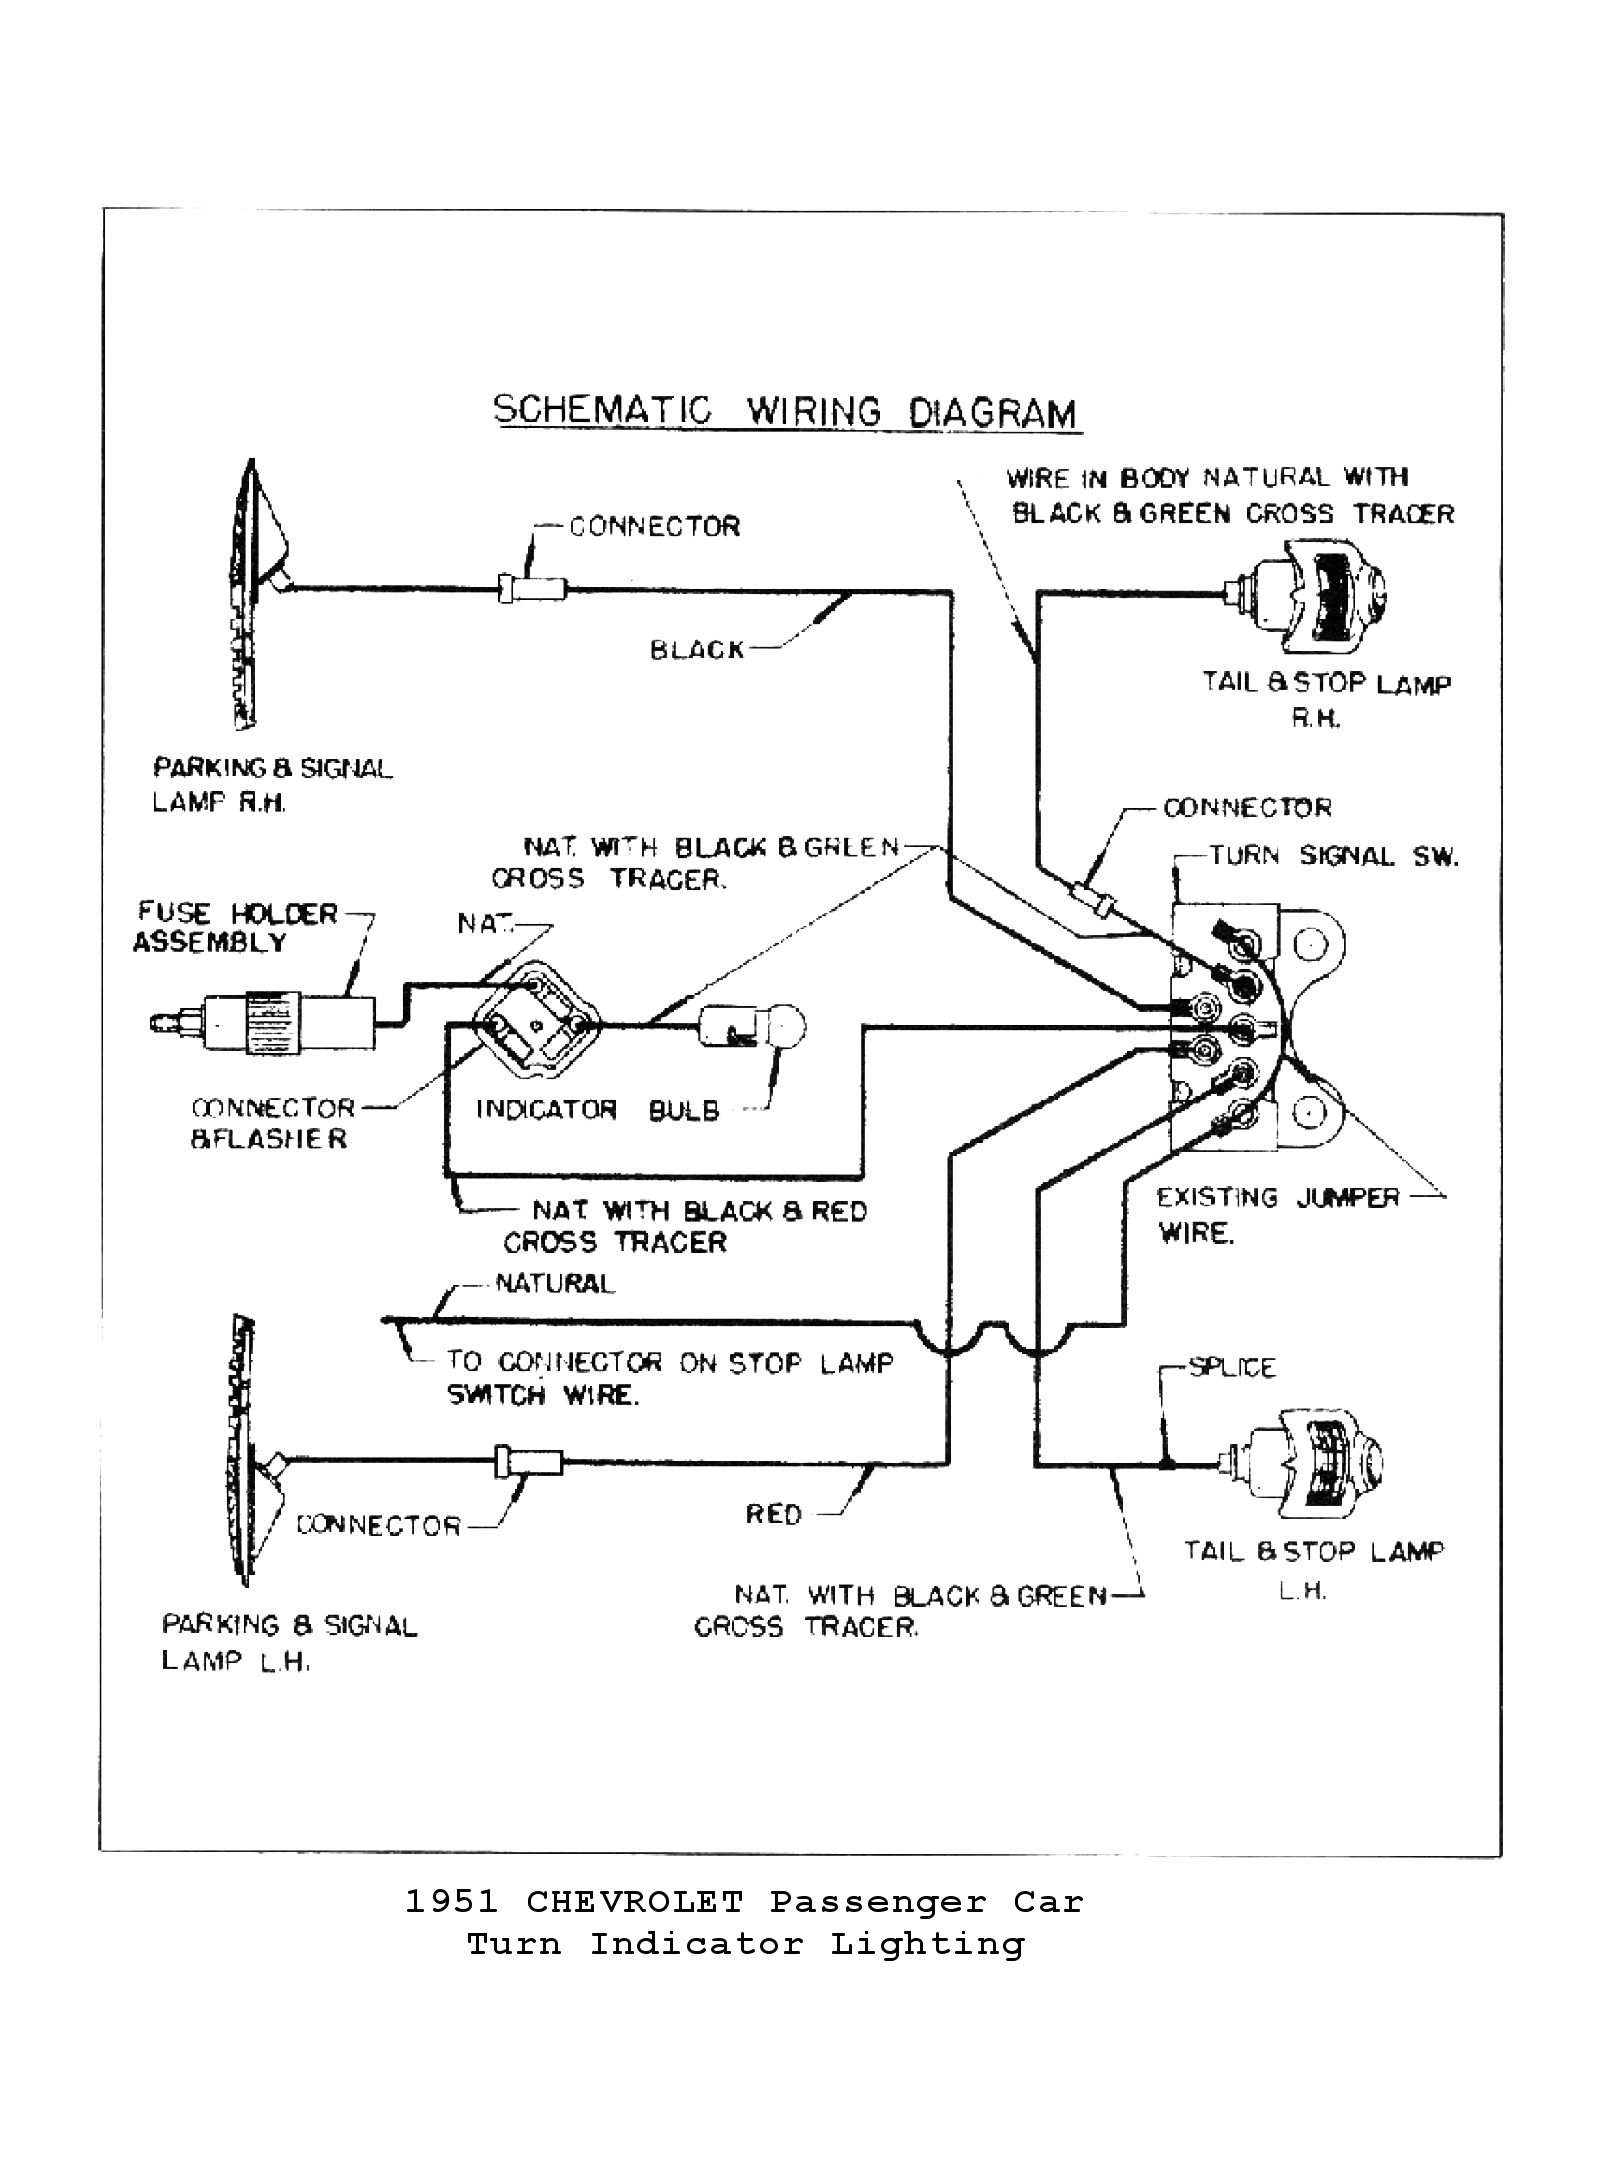 5152turnsignals 55 chevy heater diagram wiring schematic wiring diagram simonand Chevy Truck Wiring Diagram at alyssarenee.co